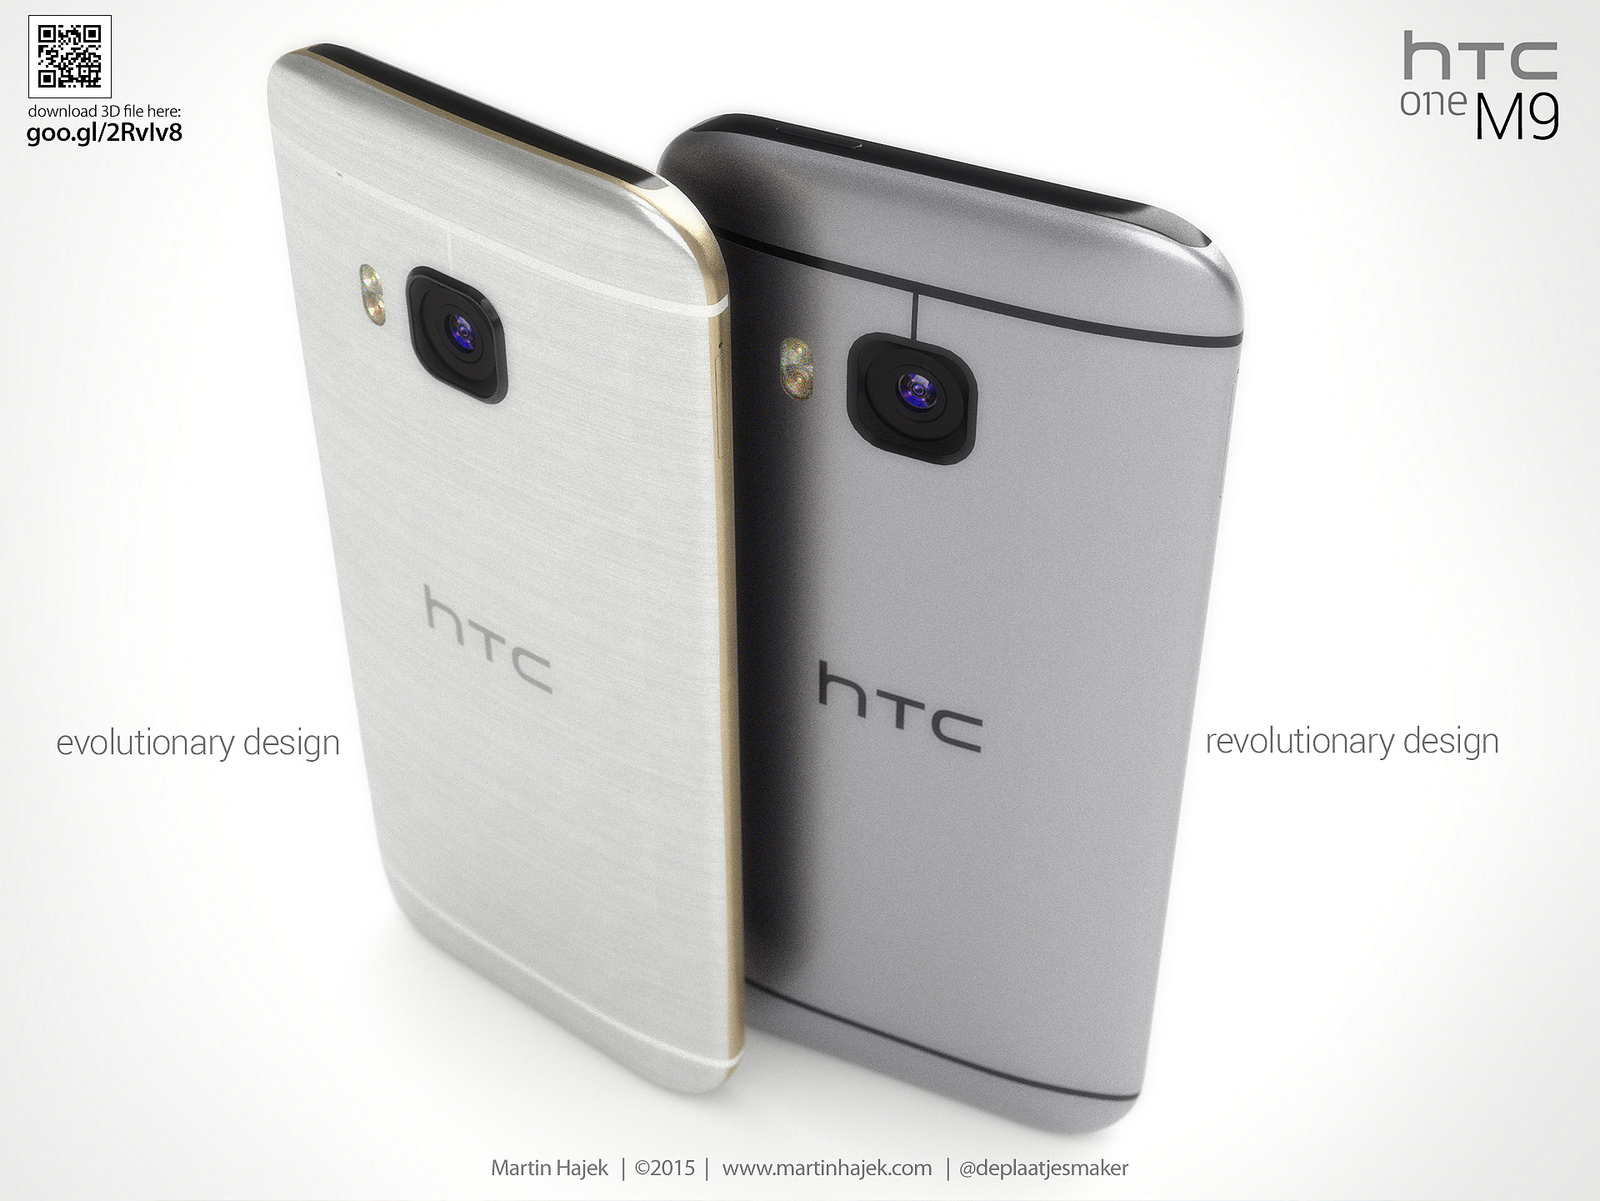 HTC-One-M9-comparativa-Martin-Hajek(3)